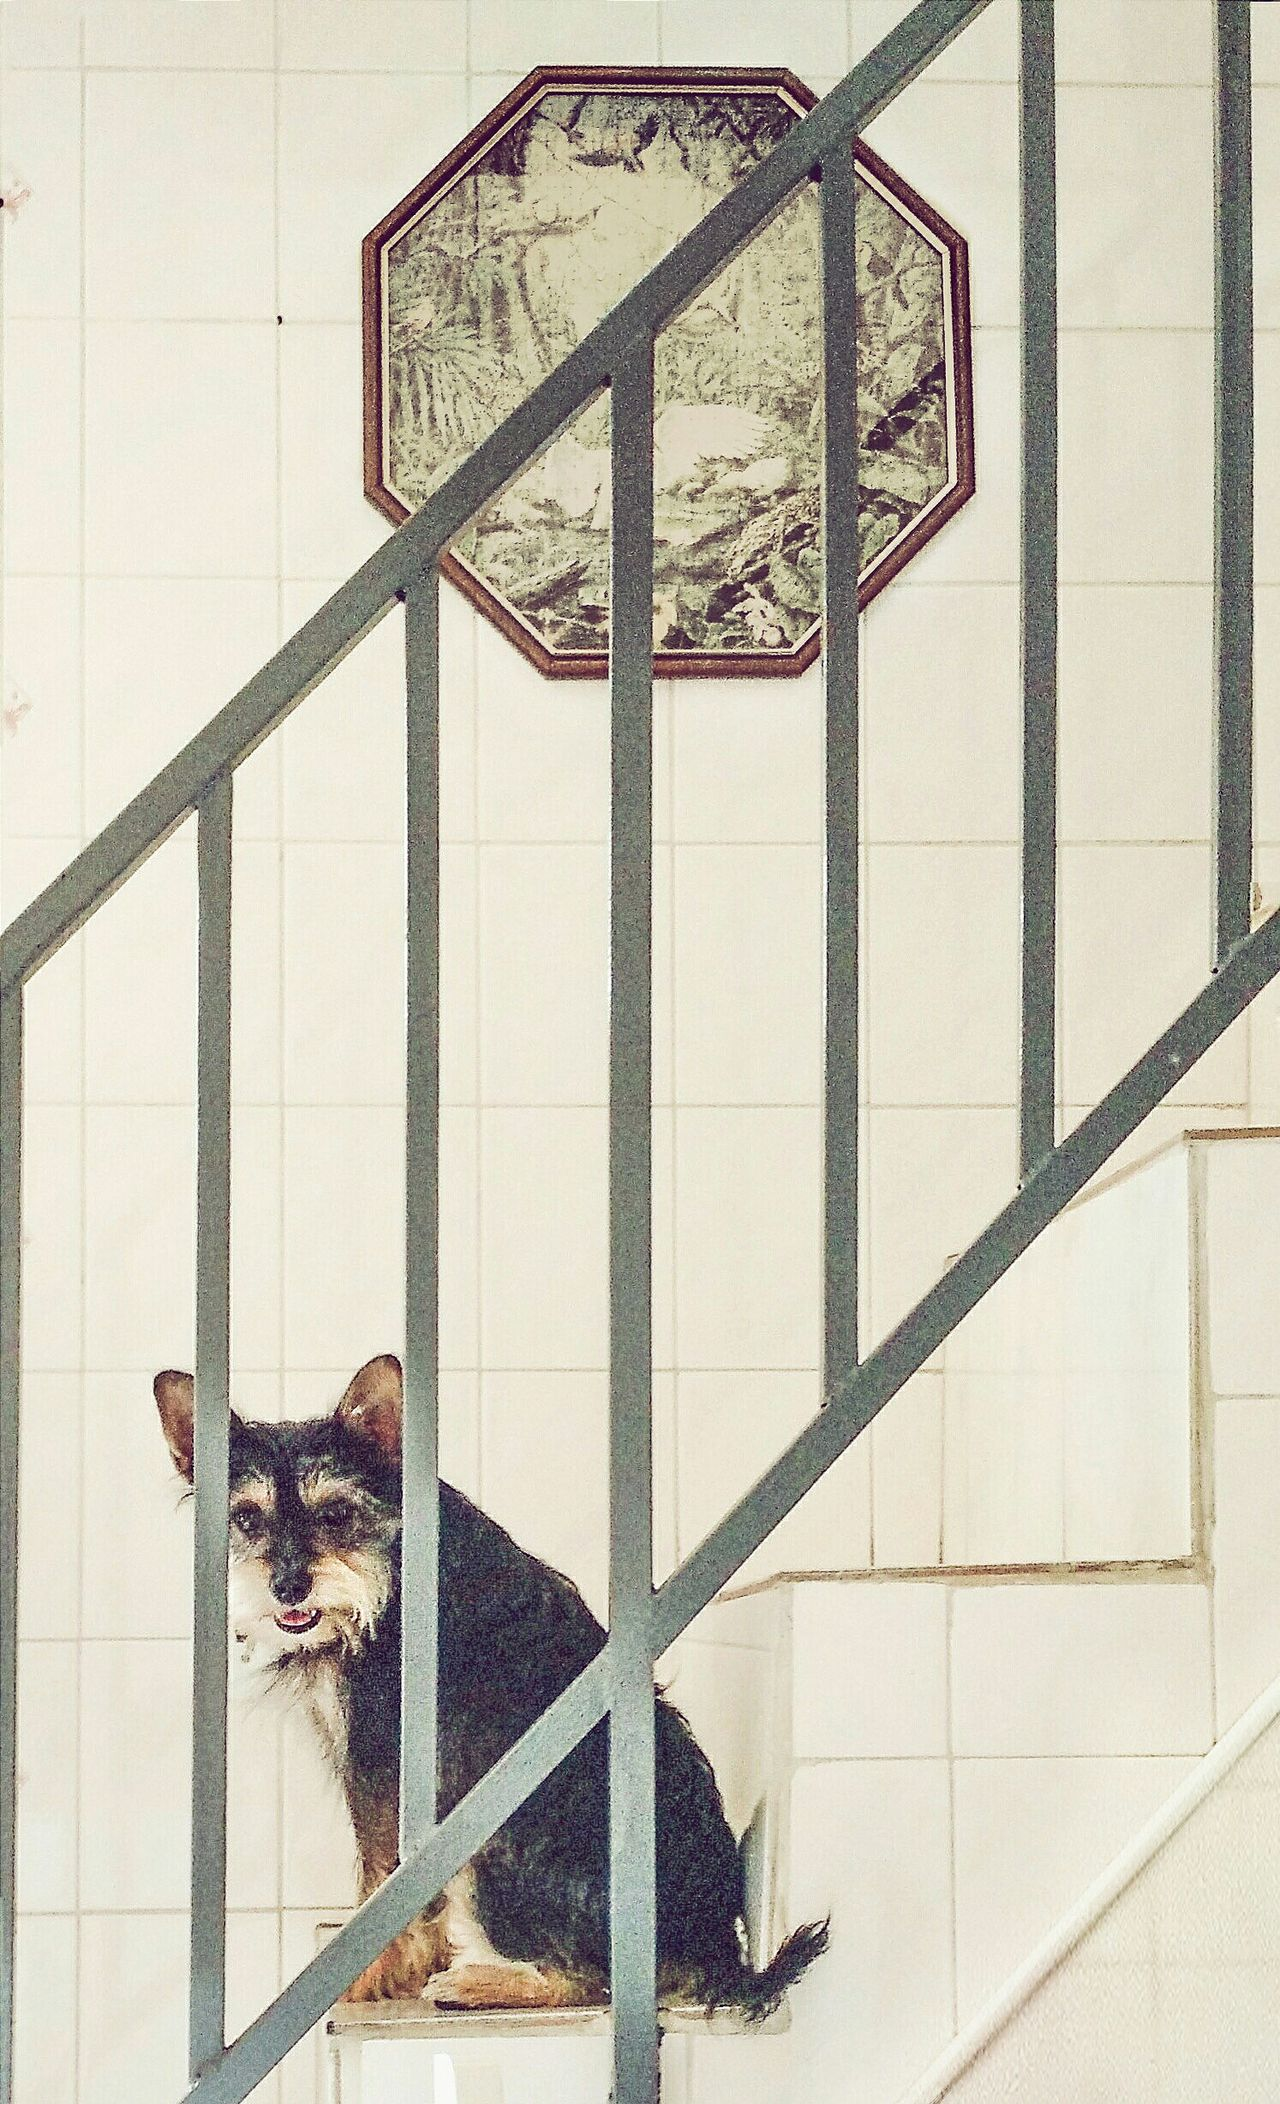 Pet Furryfriend Dog Cute Everyday Joy Jundiaí Stairs pictureonthewall